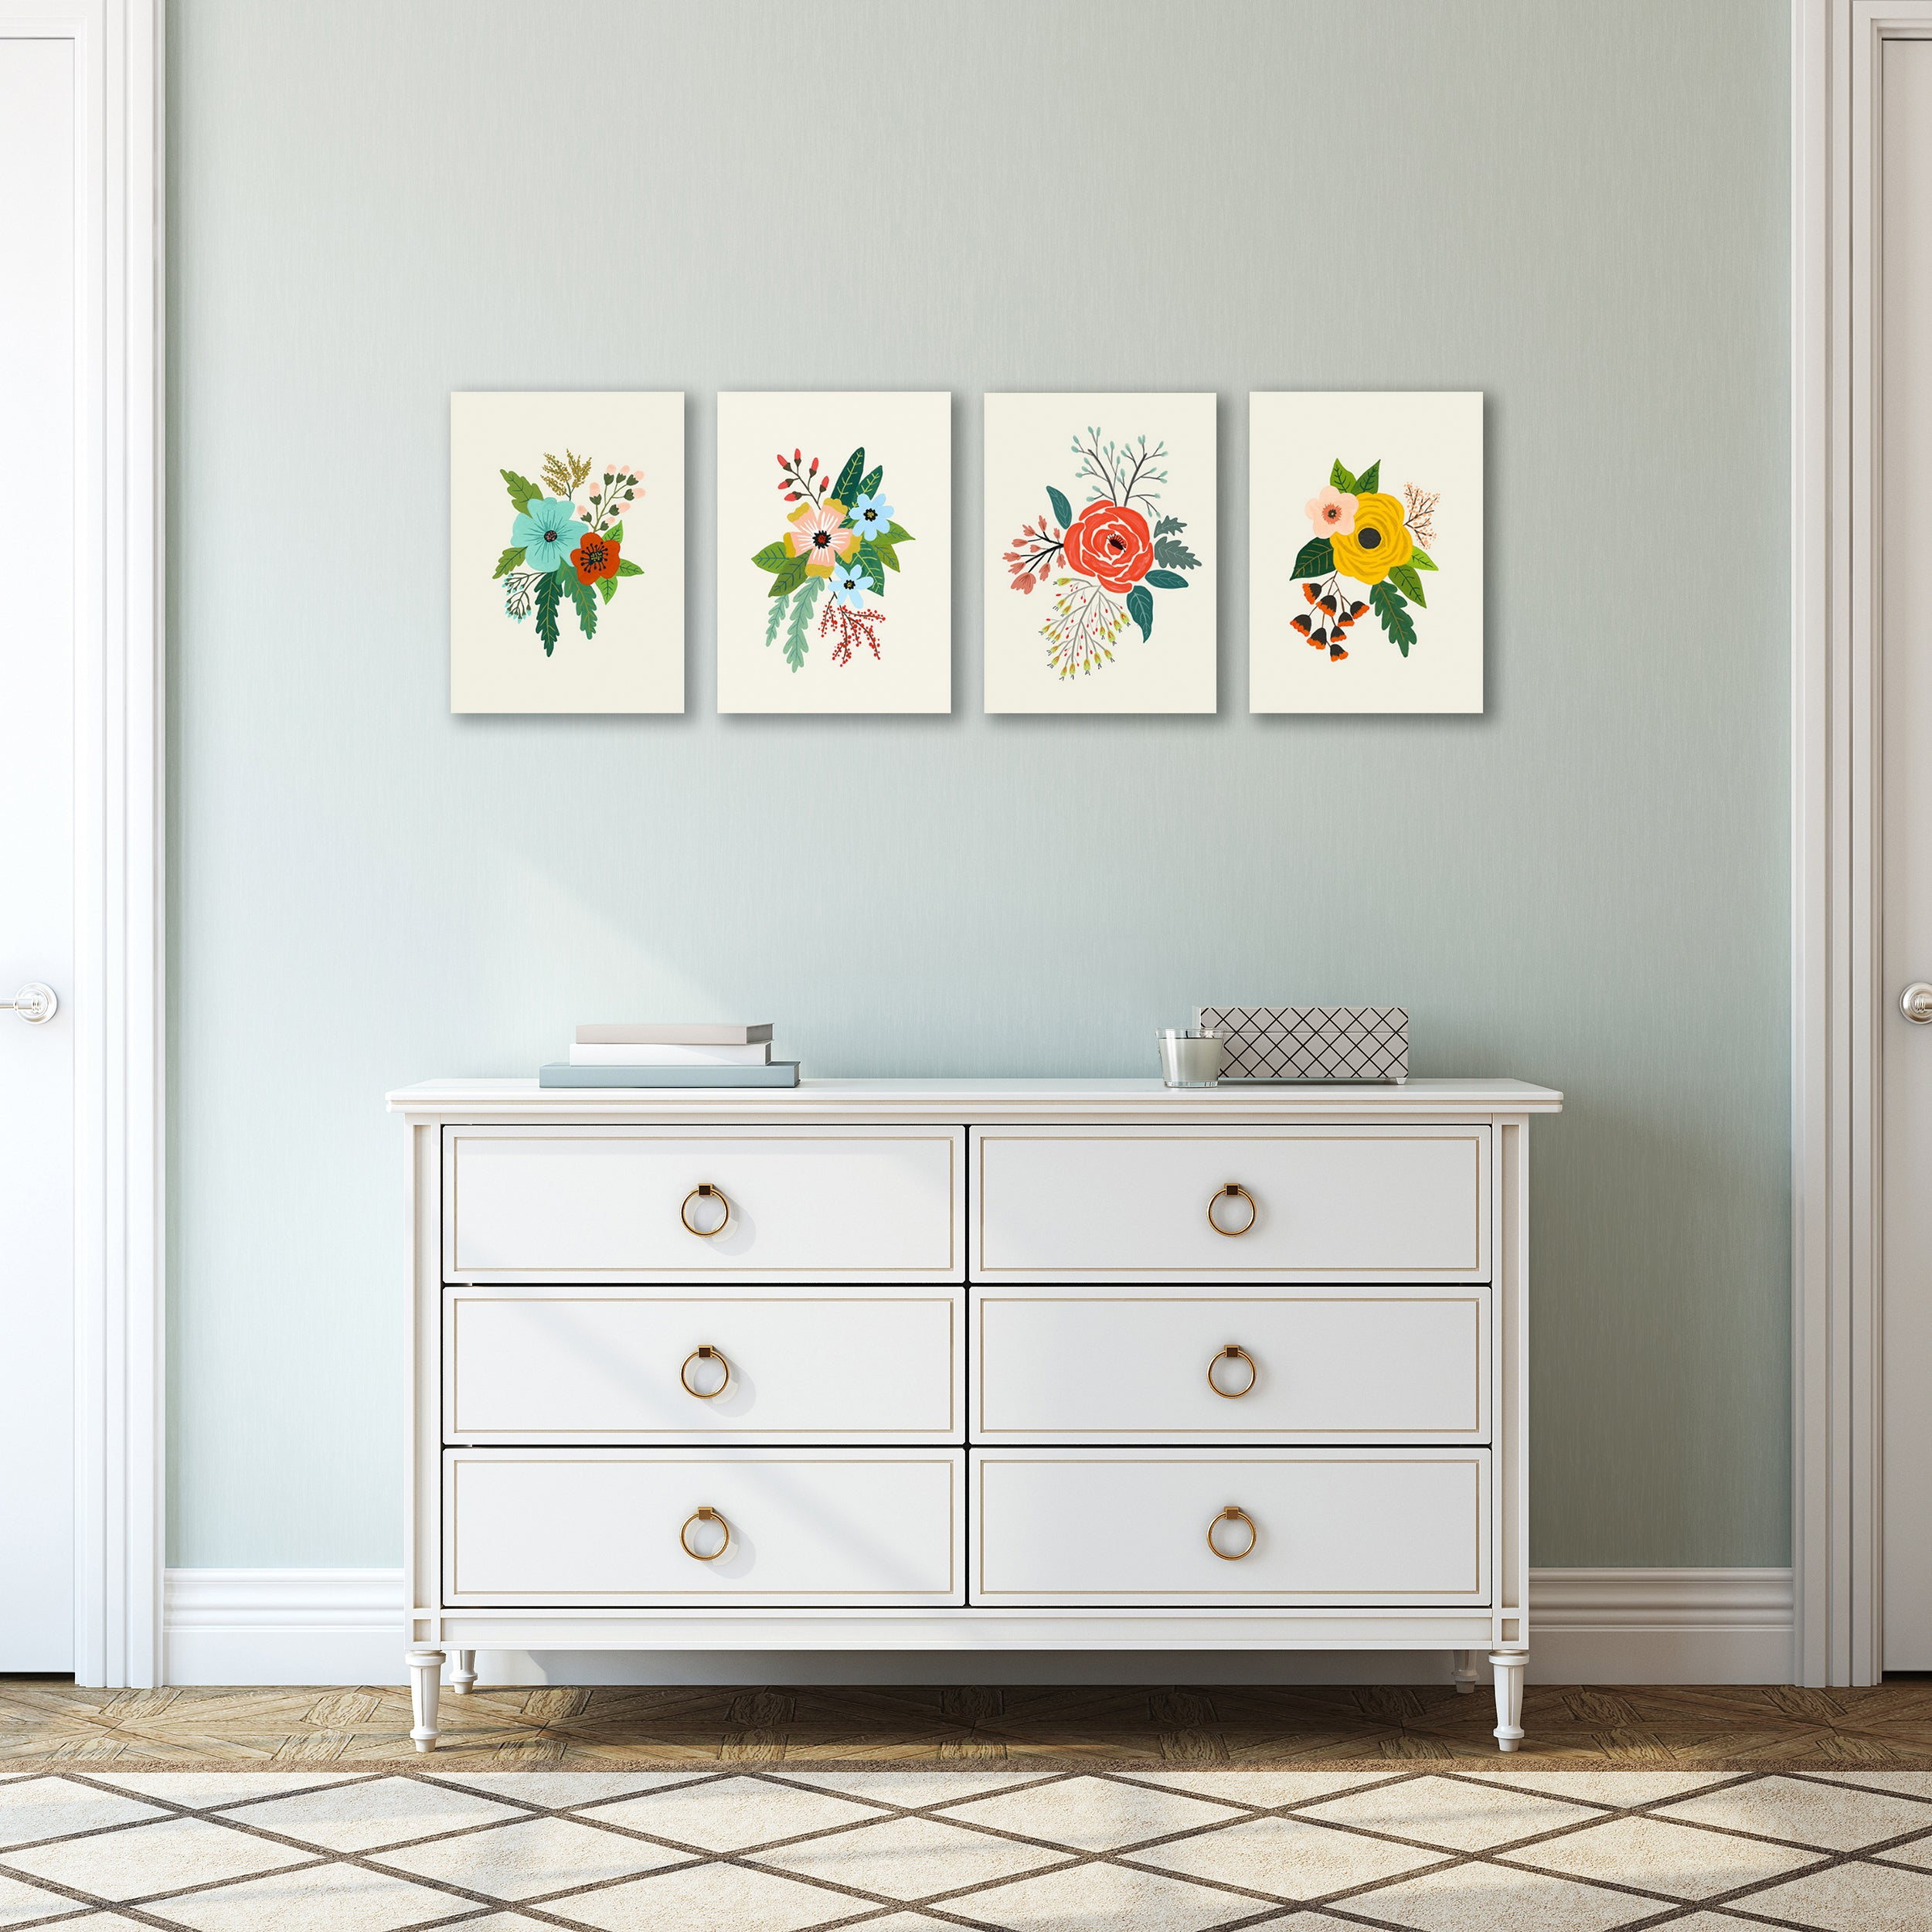 Folk Art Flowers by Annie Bailey - 4 Piece Wrapped Canvas Gallery Wall Set - Wrapped Canvas - Americanflat